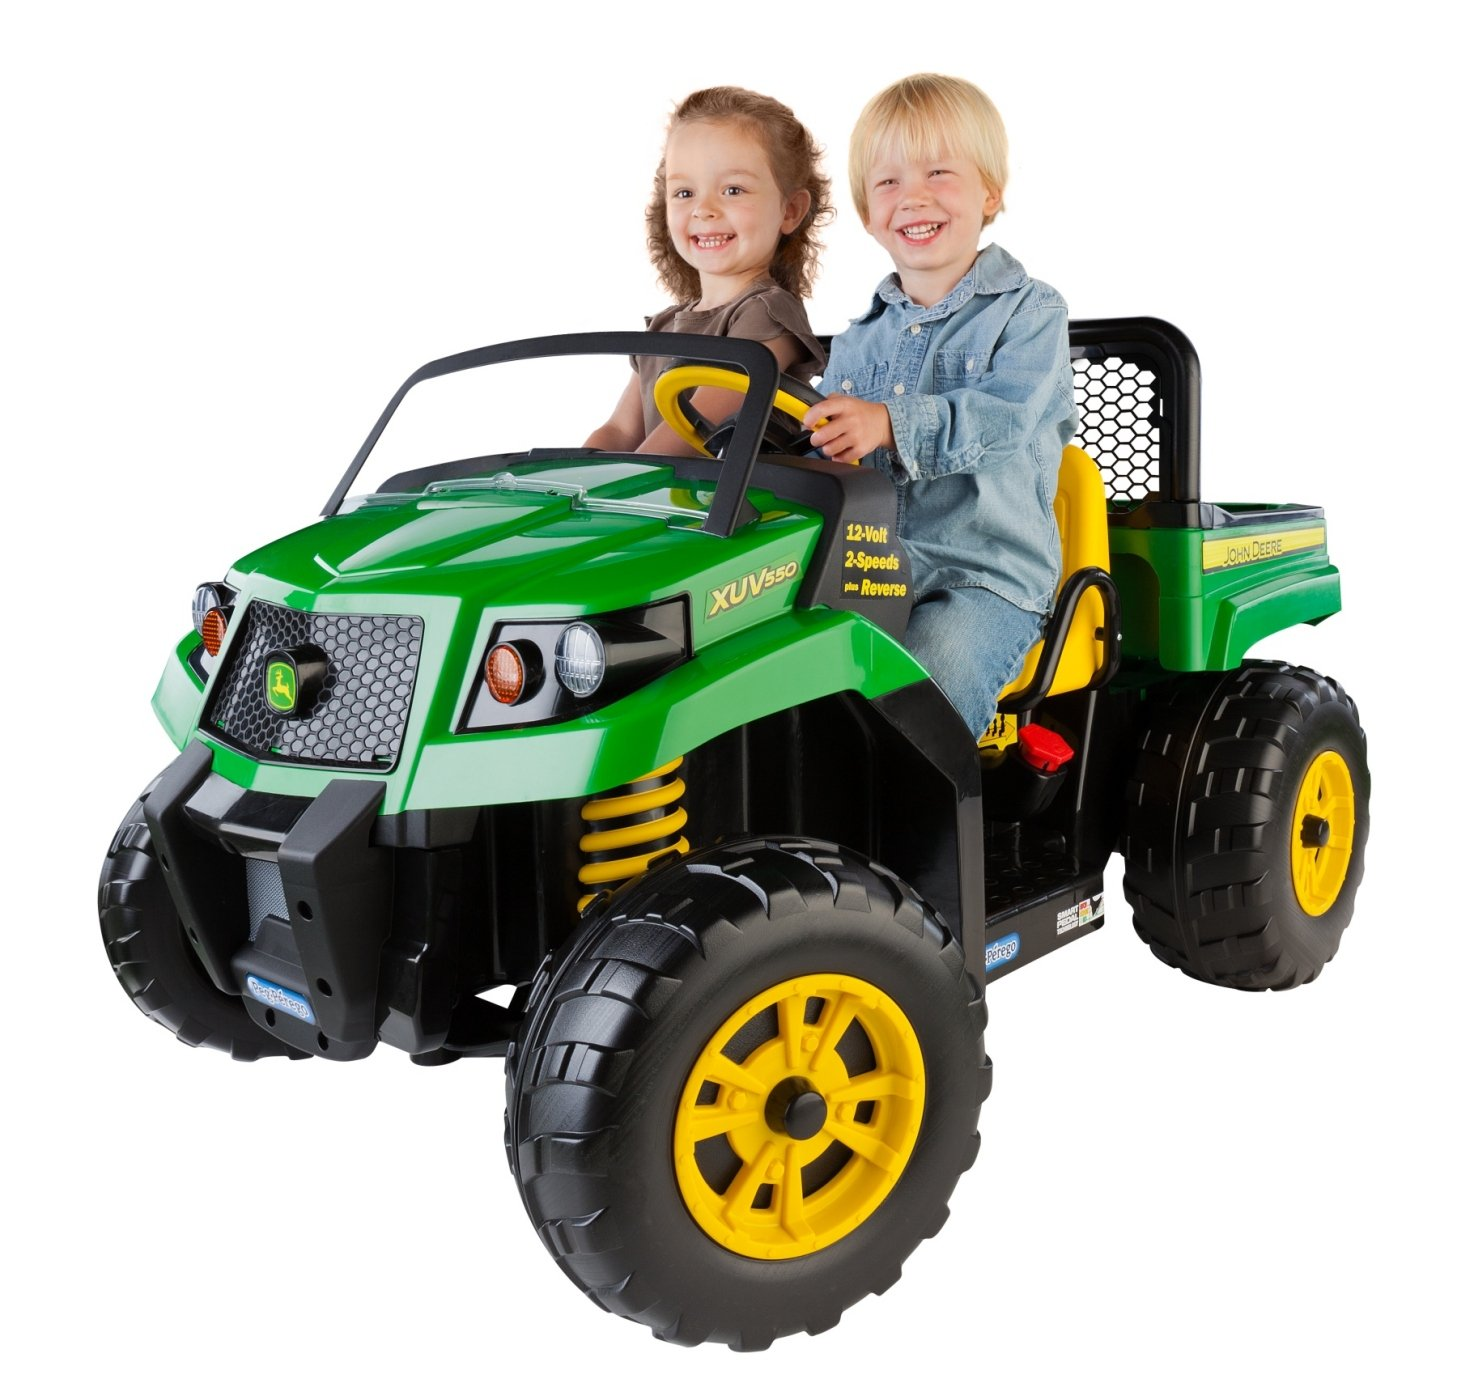 Peg Perego John Deere Gator